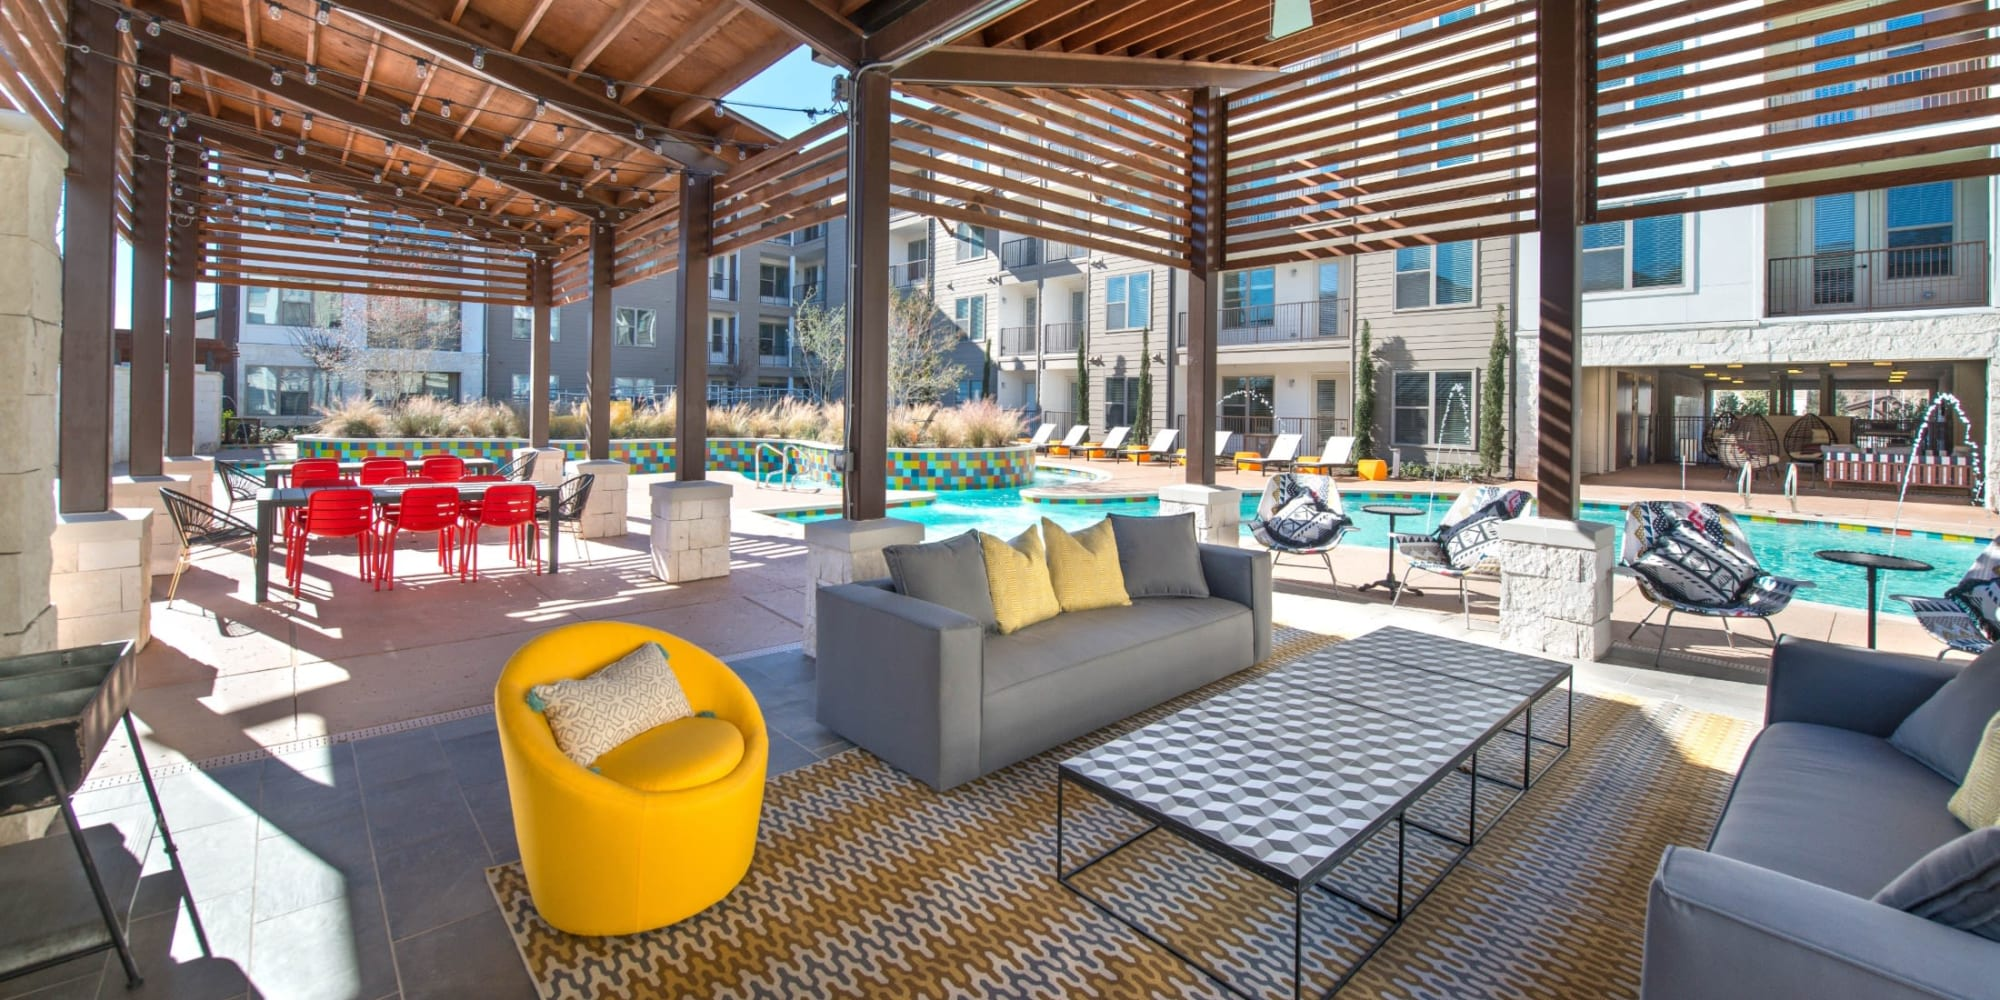 Apartments at Mercantile River District in Fort Worth, Texas